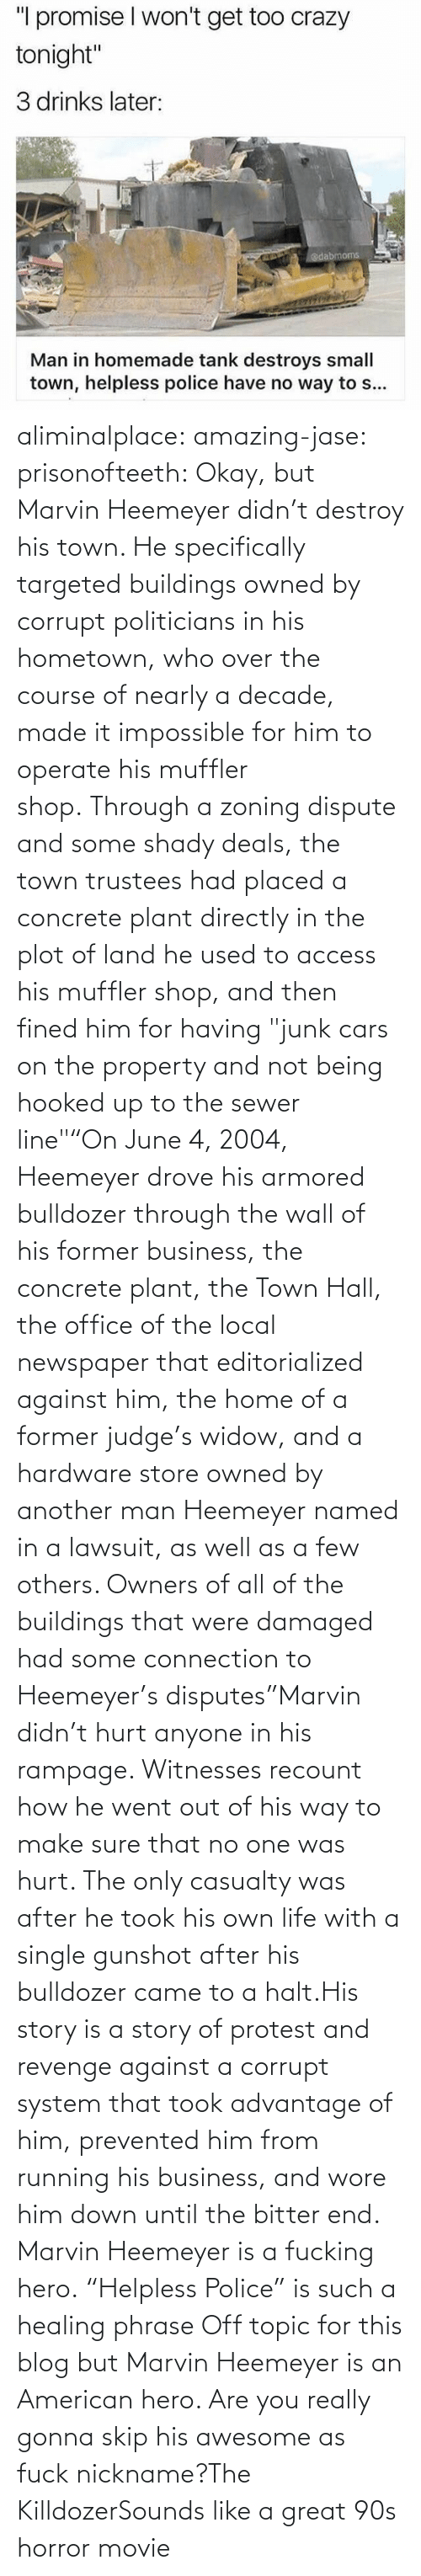 "Office: aliminalplace: amazing-jase:  prisonofteeth: Okay, but Marvin Heemeyer didn't destroy his town. He specifically targeted buildings owned by corrupt politicians in his hometown, who over the course of nearly a decade, made it impossible for him to operate his muffler shop. Through a zoning dispute and some shady deals, the town trustees had placed a concrete plant directly in the plot of land he used to access his muffler shop, and then fined him for having ""junk cars on the property and not being hooked up to the sewer line""""On June 4, 2004, Heemeyer drove his armored bulldozer through the wall of his former business, the concrete plant, the Town Hall, the office of the local newspaper that editorialized against him, the home of a former judge's widow, and a hardware store owned by another man Heemeyer named in a lawsuit, as well as a few others. Owners of all of the buildings that were damaged had some connection to Heemeyer's disputes""Marvin didn't hurt anyone in his rampage. Witnesses recount how he went out of his way to make sure that no one was hurt. The only casualty was after he took his own life with a single gunshot after his bulldozer came to a halt.His story is a story of protest and revenge against a corrupt system that took advantage of him, prevented him from running his business, and wore him down until the bitter end. Marvin Heemeyer is a fucking hero. ""Helpless Police"" is such a healing phrase    Off topic for this blog but Marvin Heemeyer is an American hero.     Are you really gonna skip his awesome as fuck nickname?The KilldozerSounds like a great 90s horror movie"